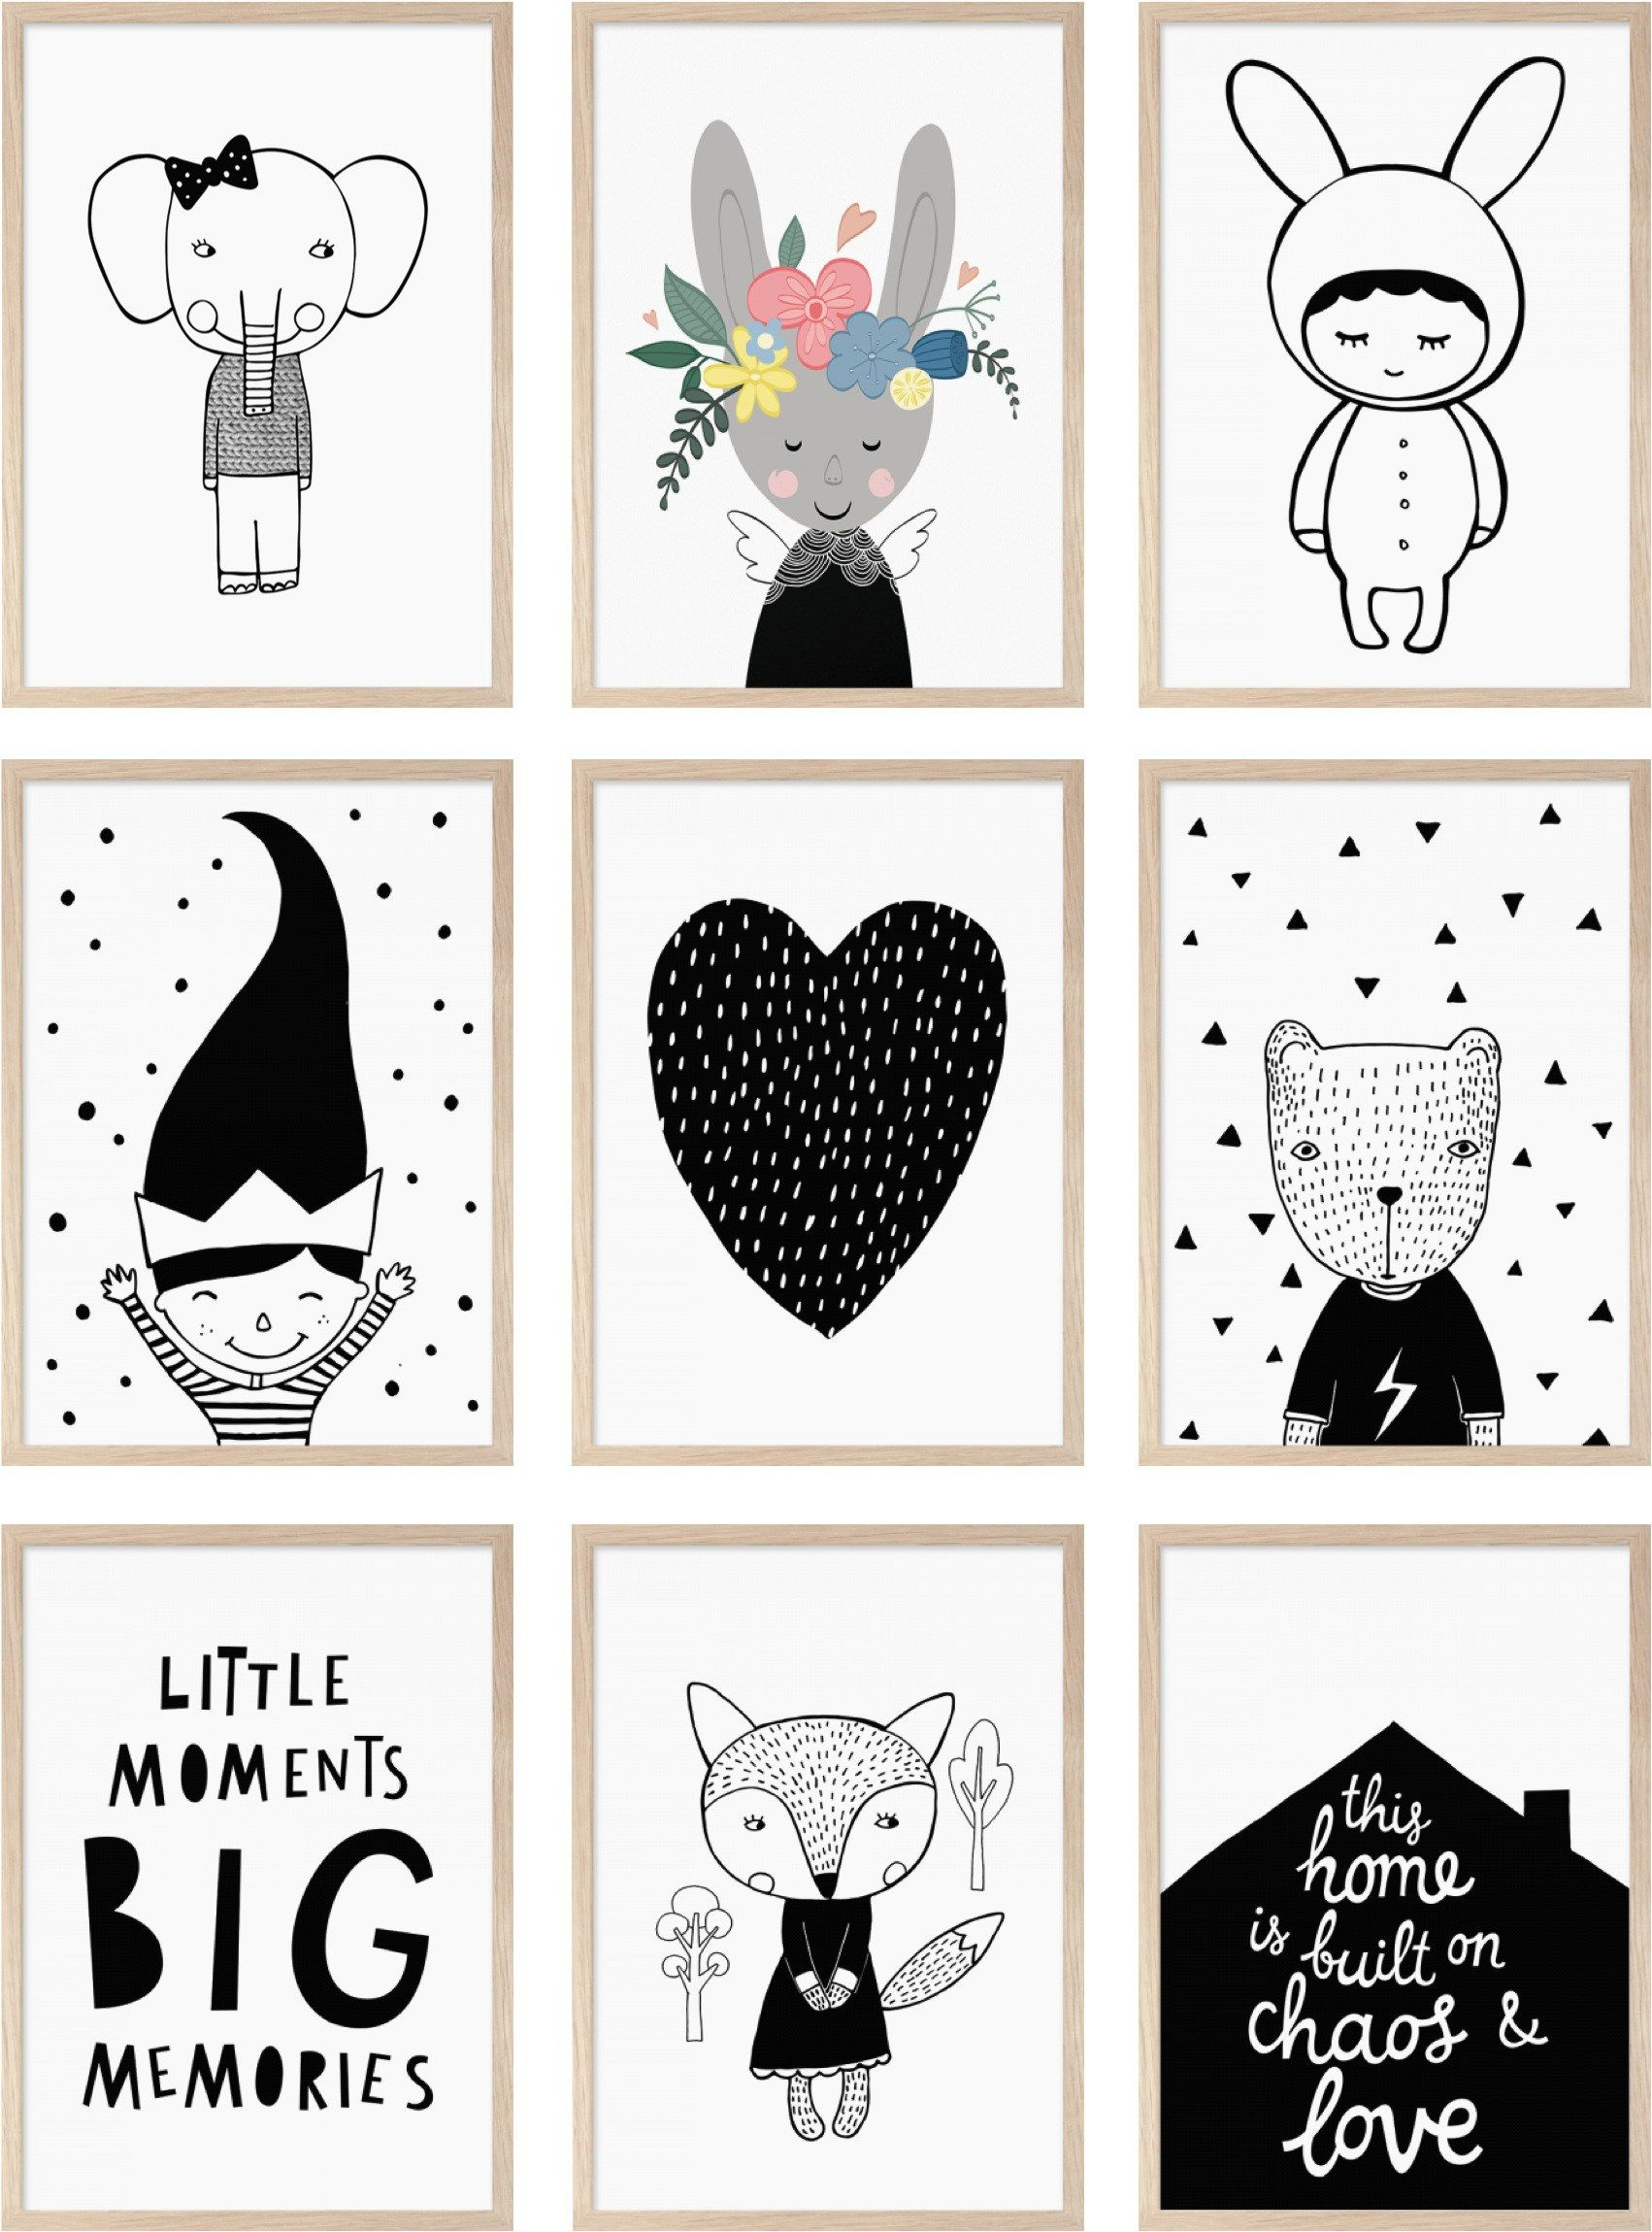 Charmant Monochrome Posters Kids Room